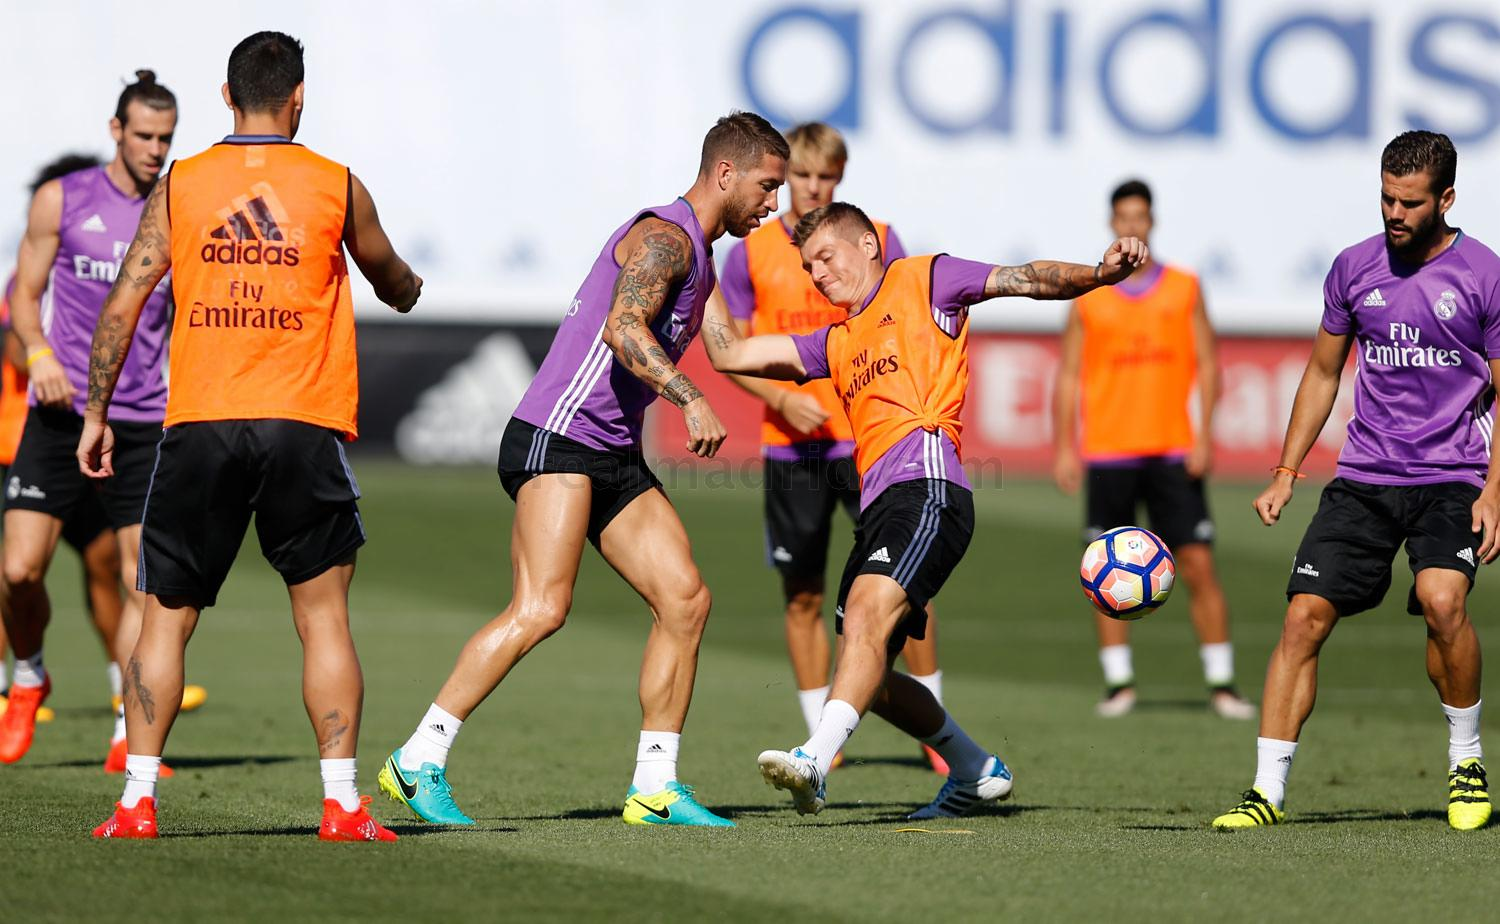 Real Madrid - Entrenamiento del Real Madrid - 19-08-2016